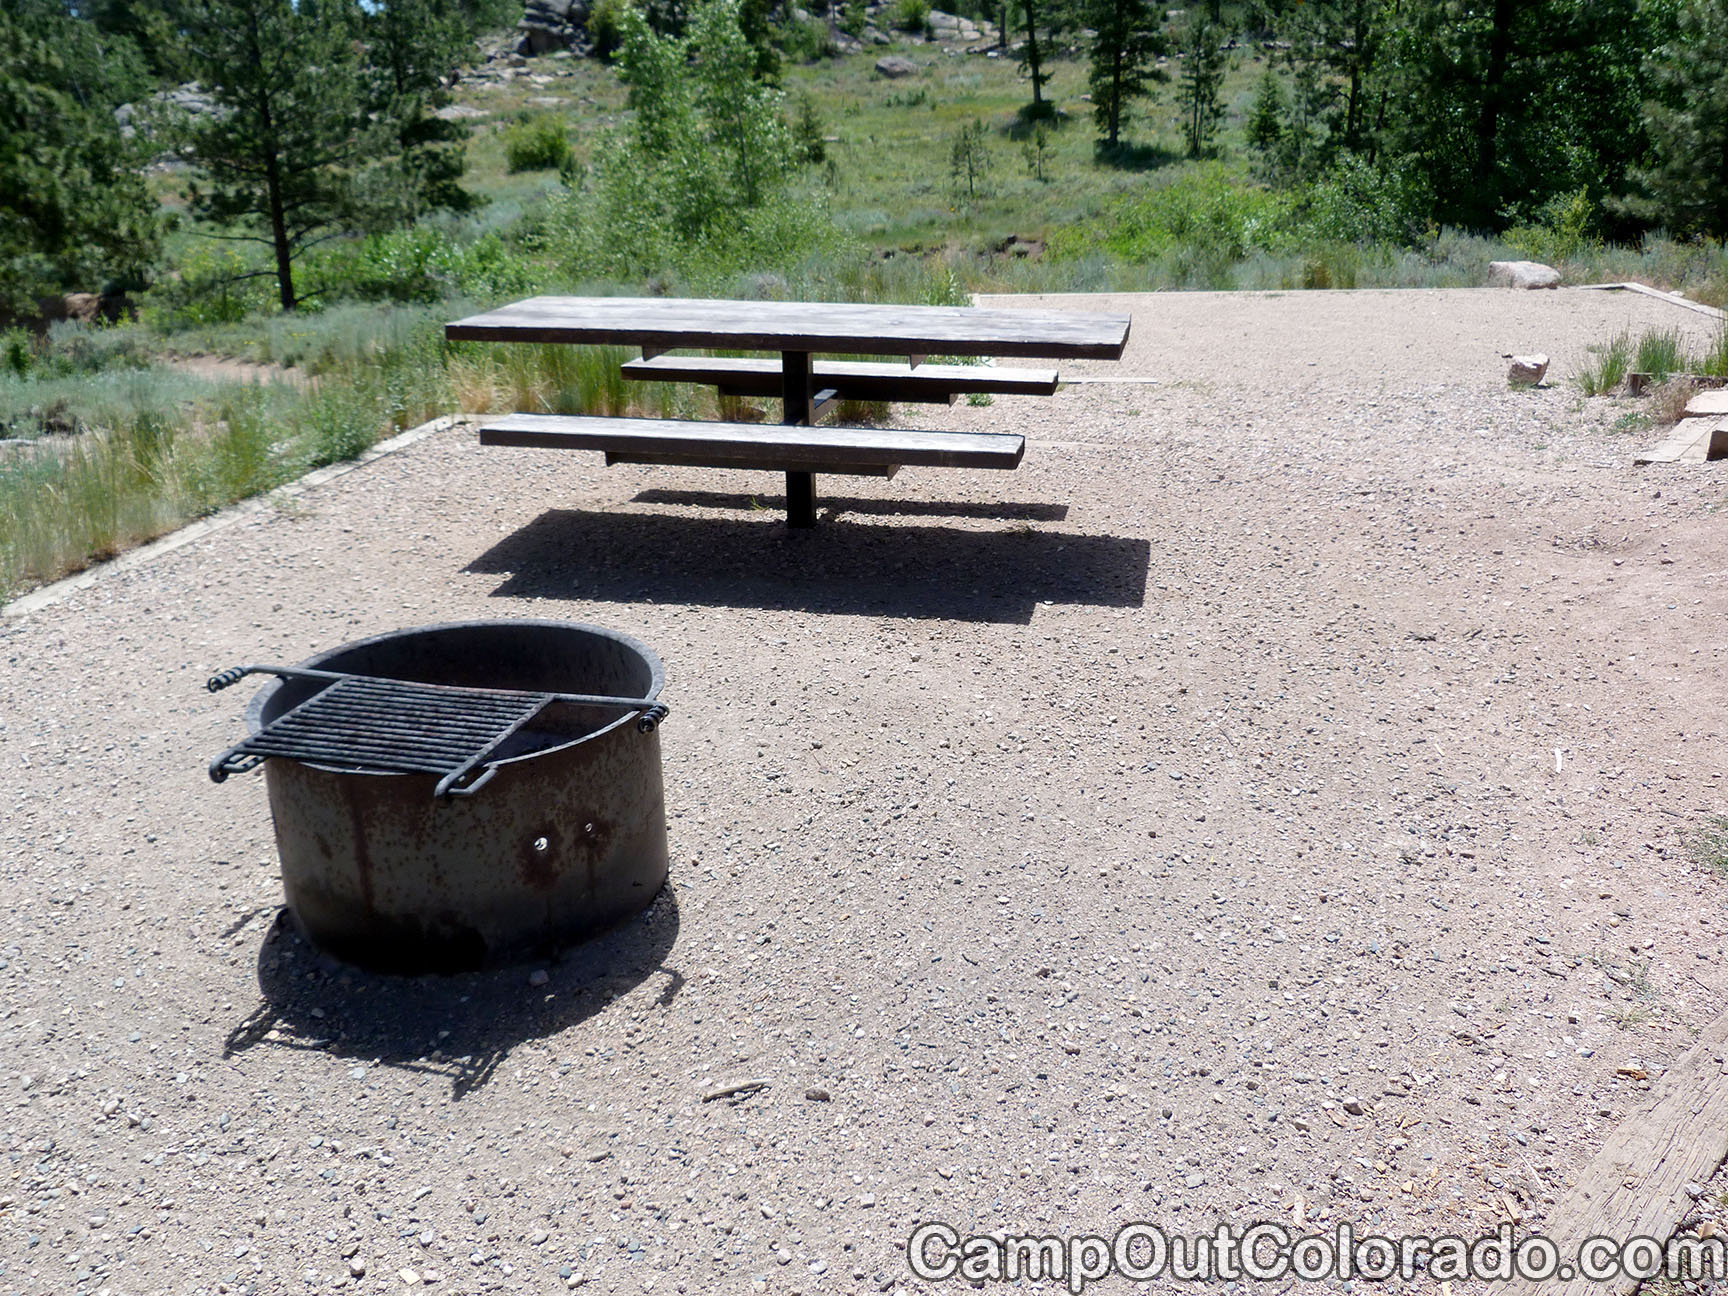 Campoutcolorado-dowdy-lake-campground-tall-fire-ring